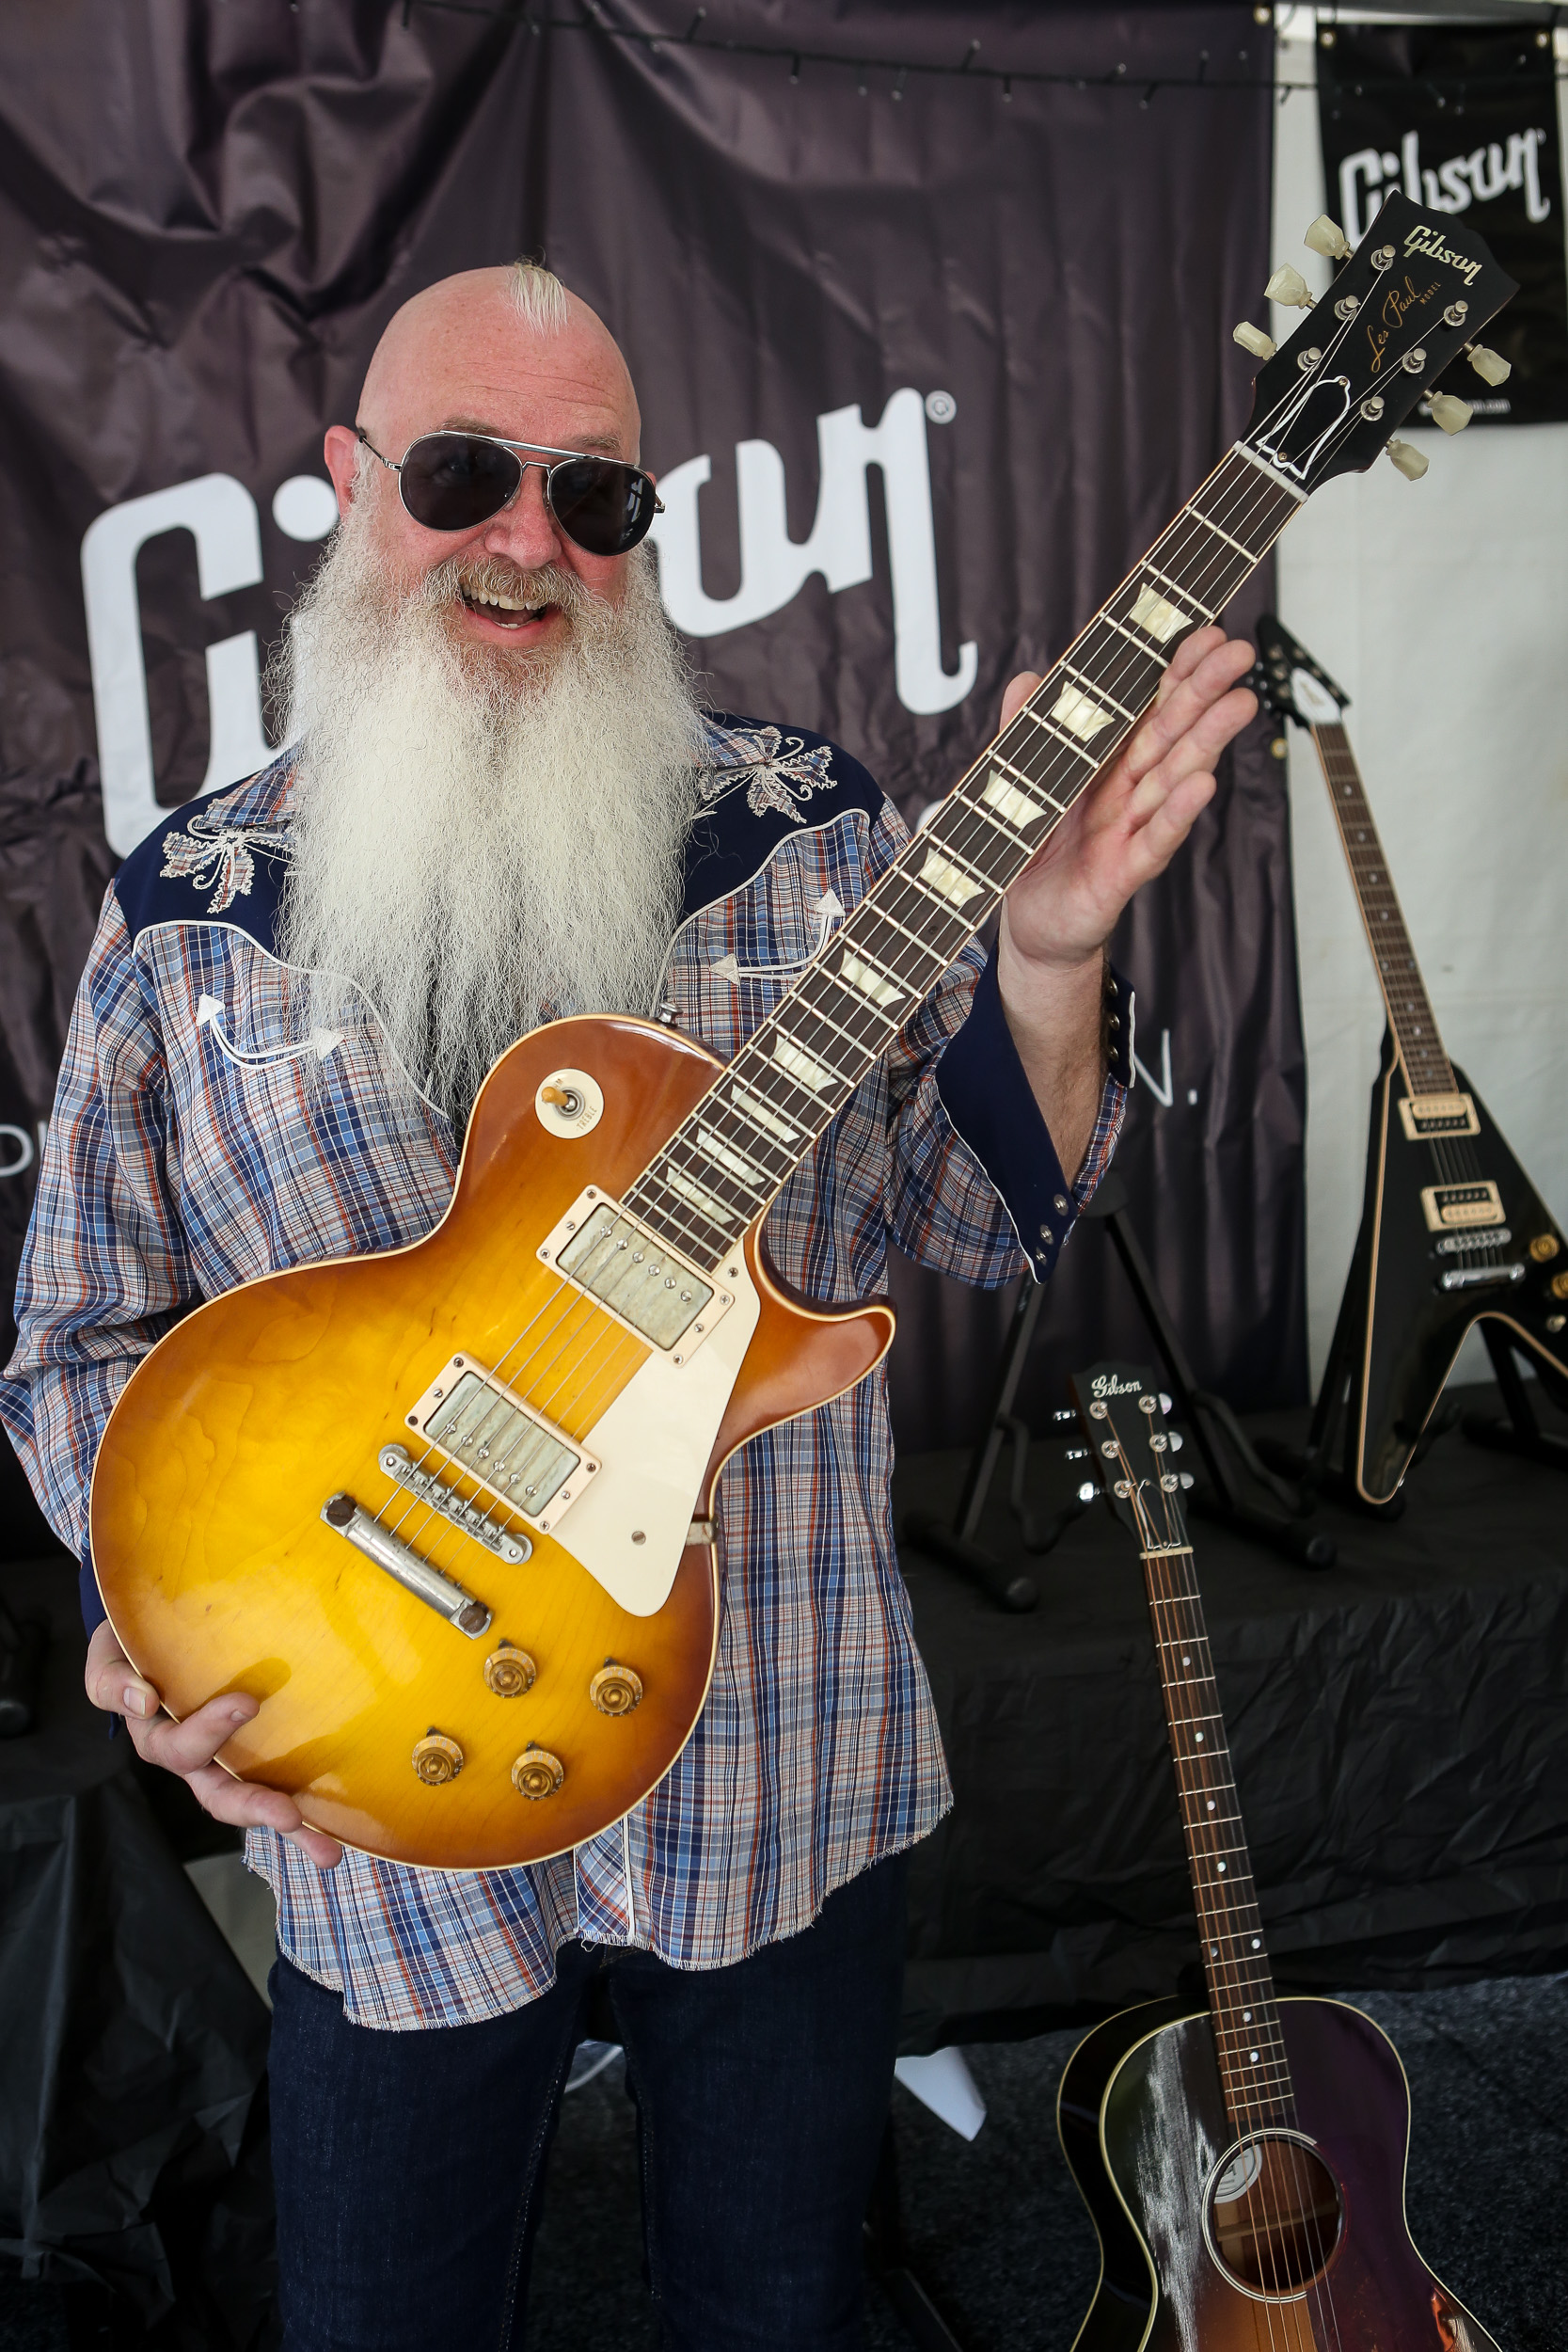 dave catching (eagles of death metal), backstage in the gibson tent